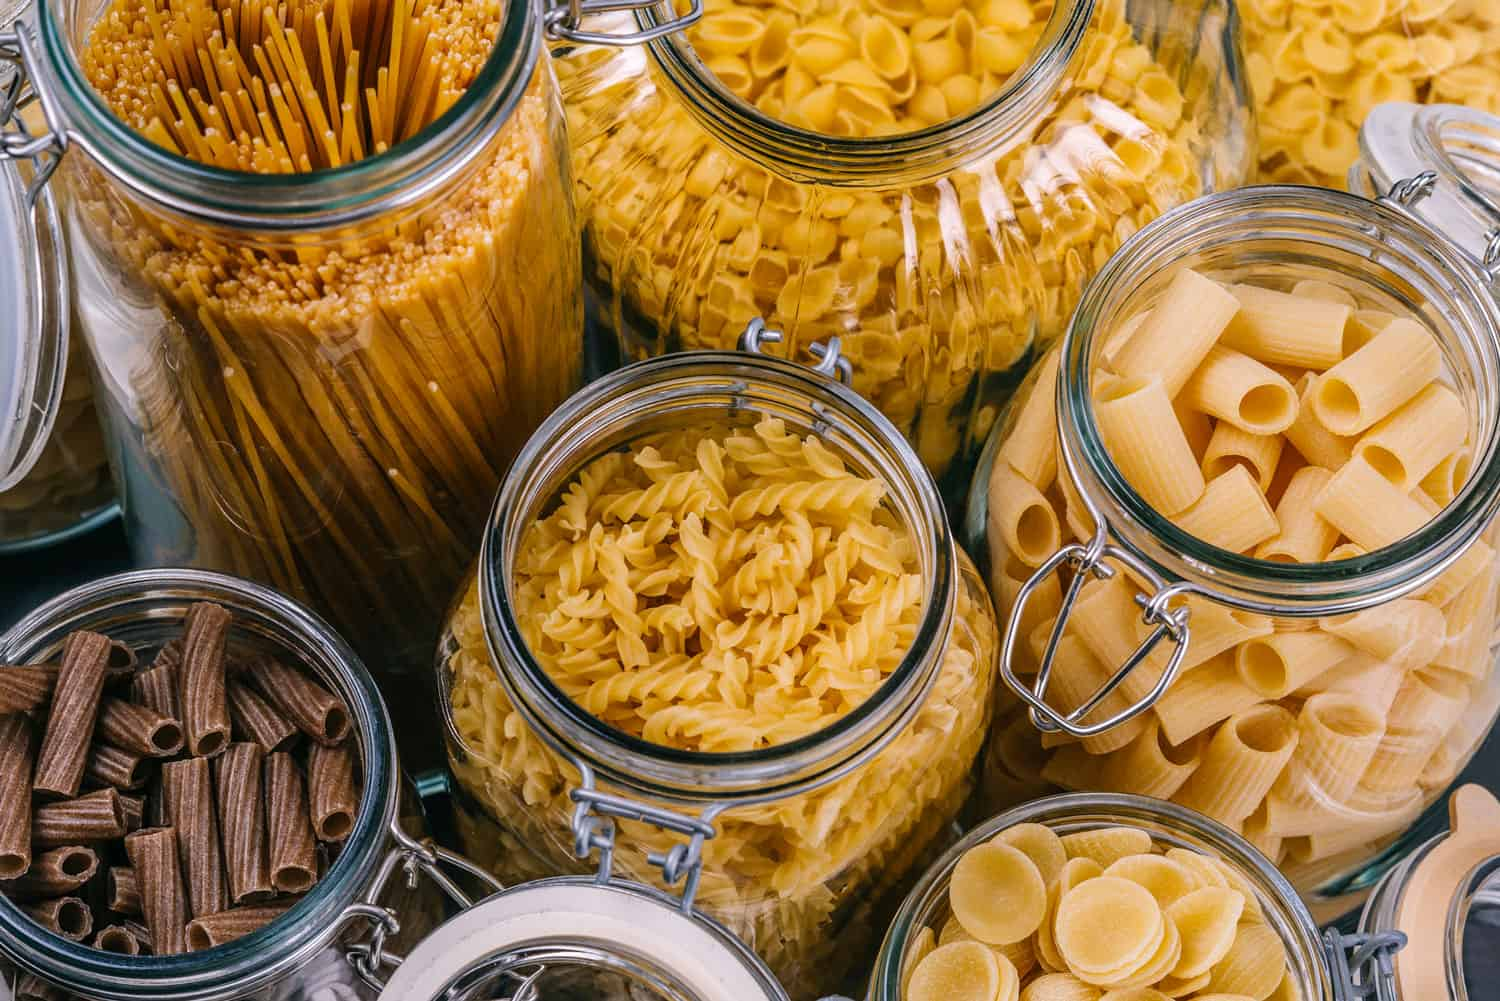 Photo of different pasta types in large glass jars